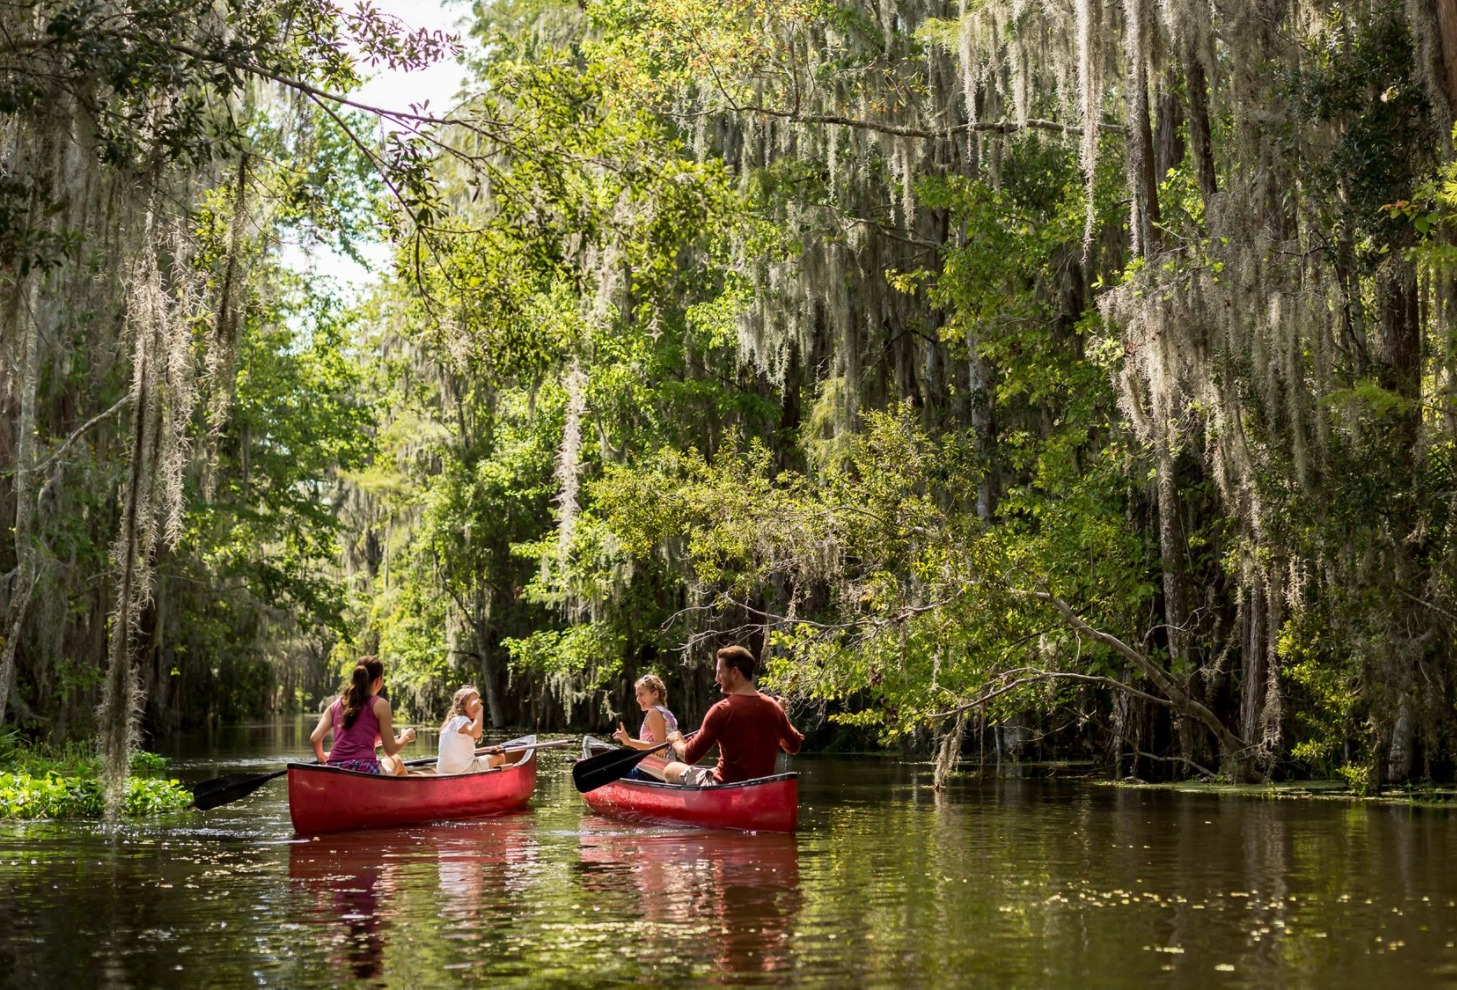 50 Things To Do In Orlando With Kids Other Than Theme Parks